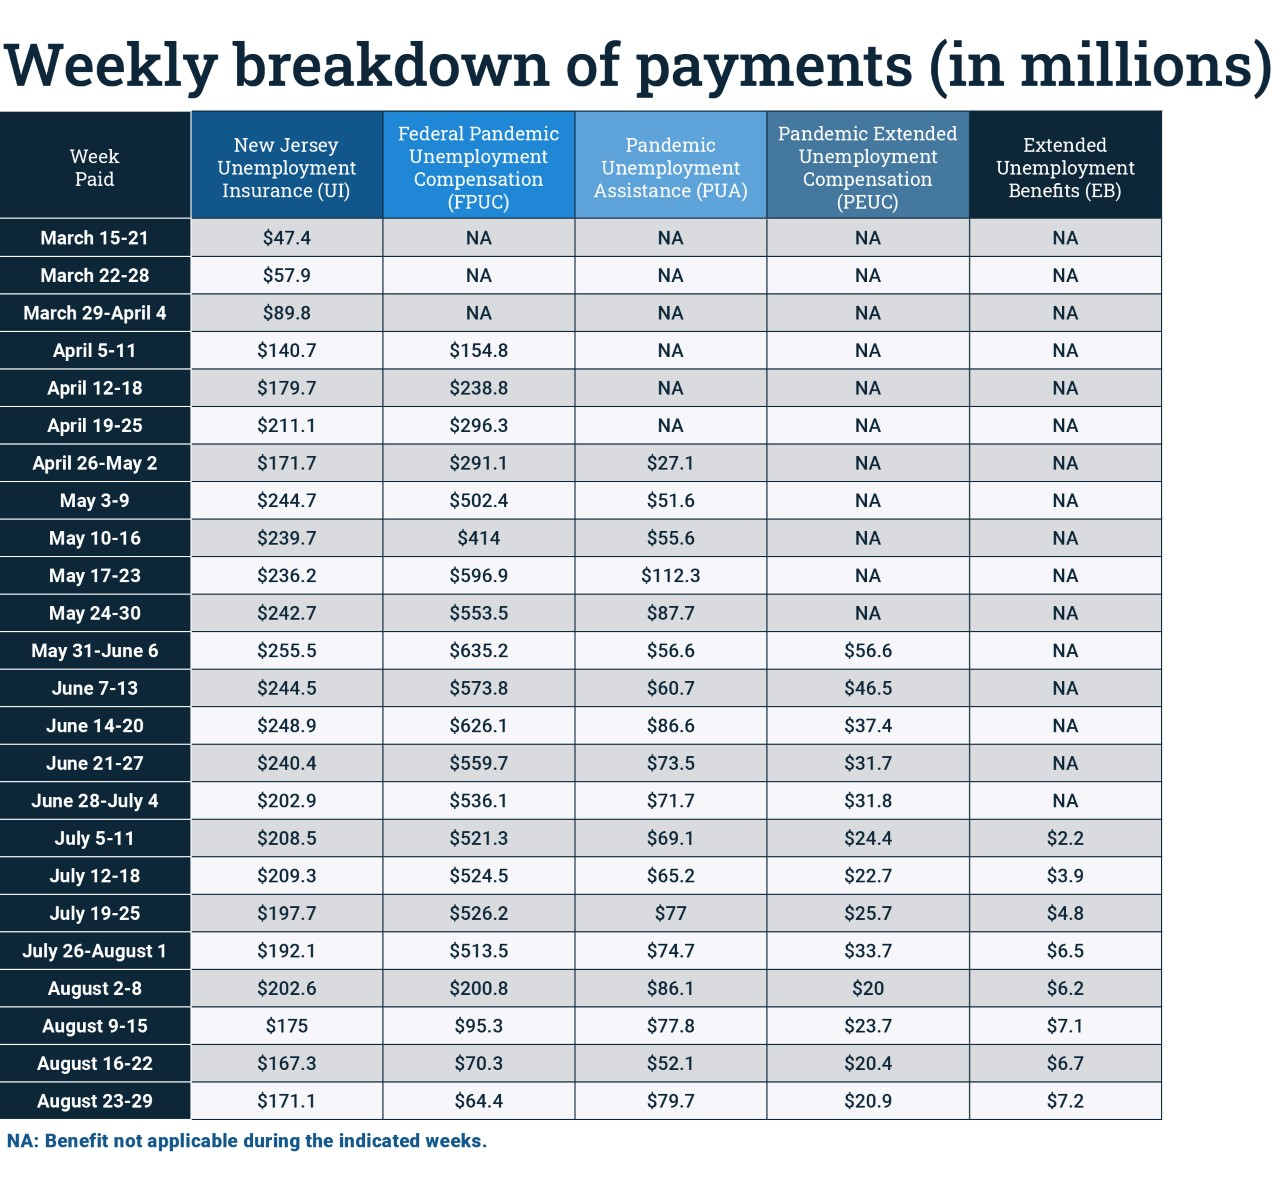 a weekly breakdown of payments